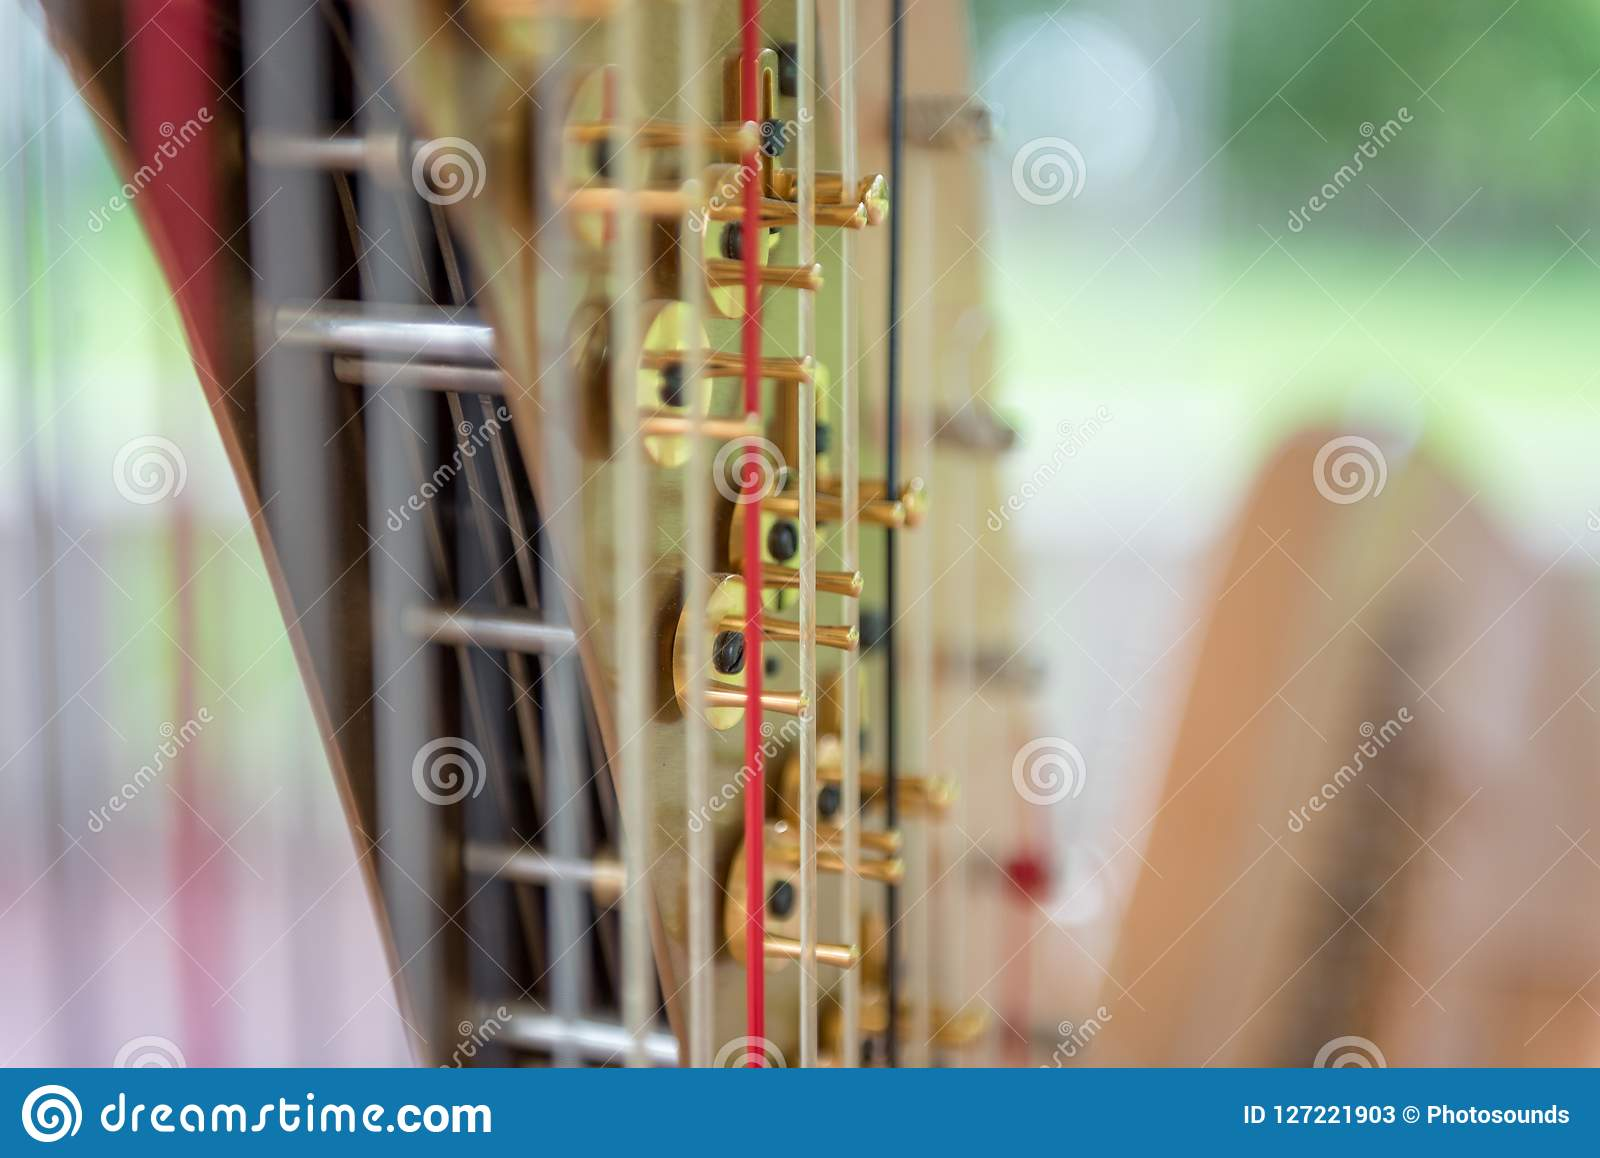 Harp Music Instrument And Strings With Shallow Depth Of